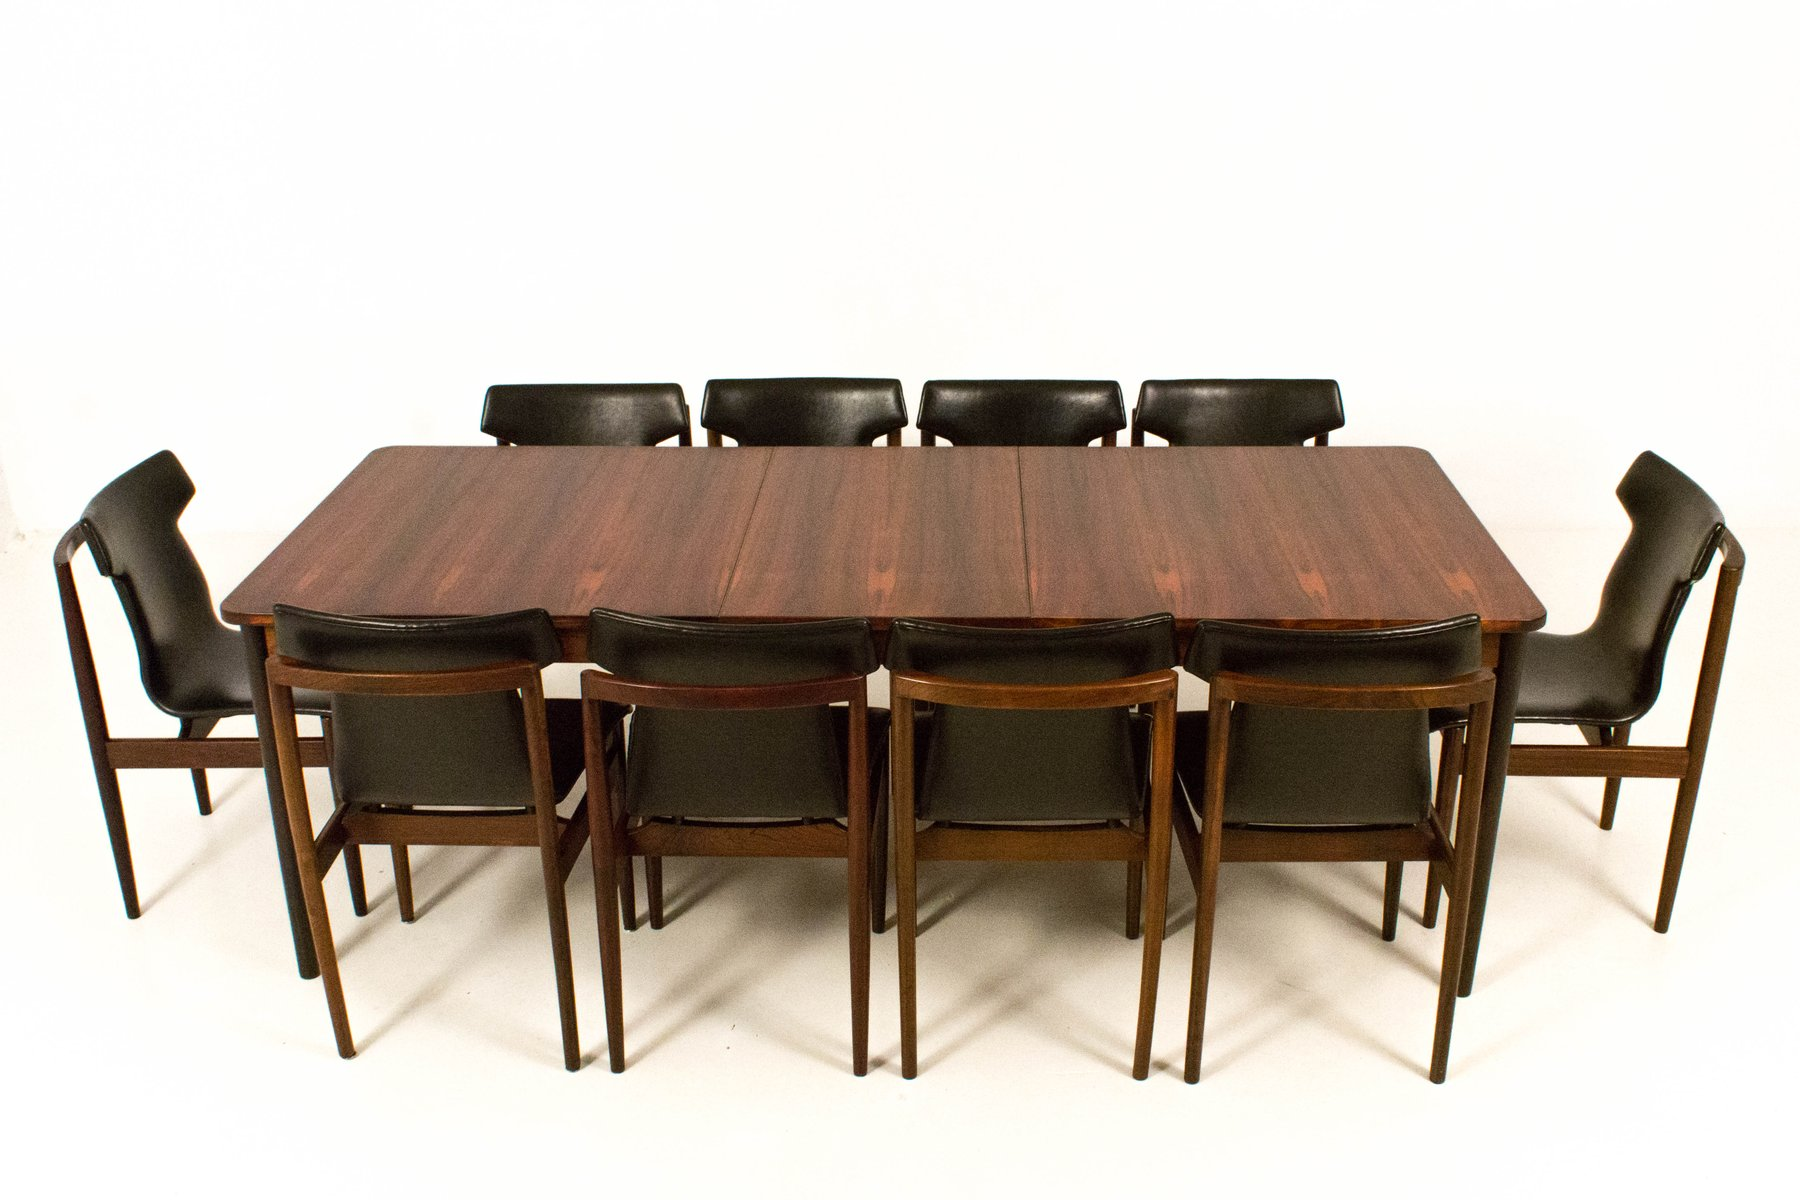 Danish Dining Room Set By Niels Otto Mller For JL Mllers 1960s Sale At Pamono